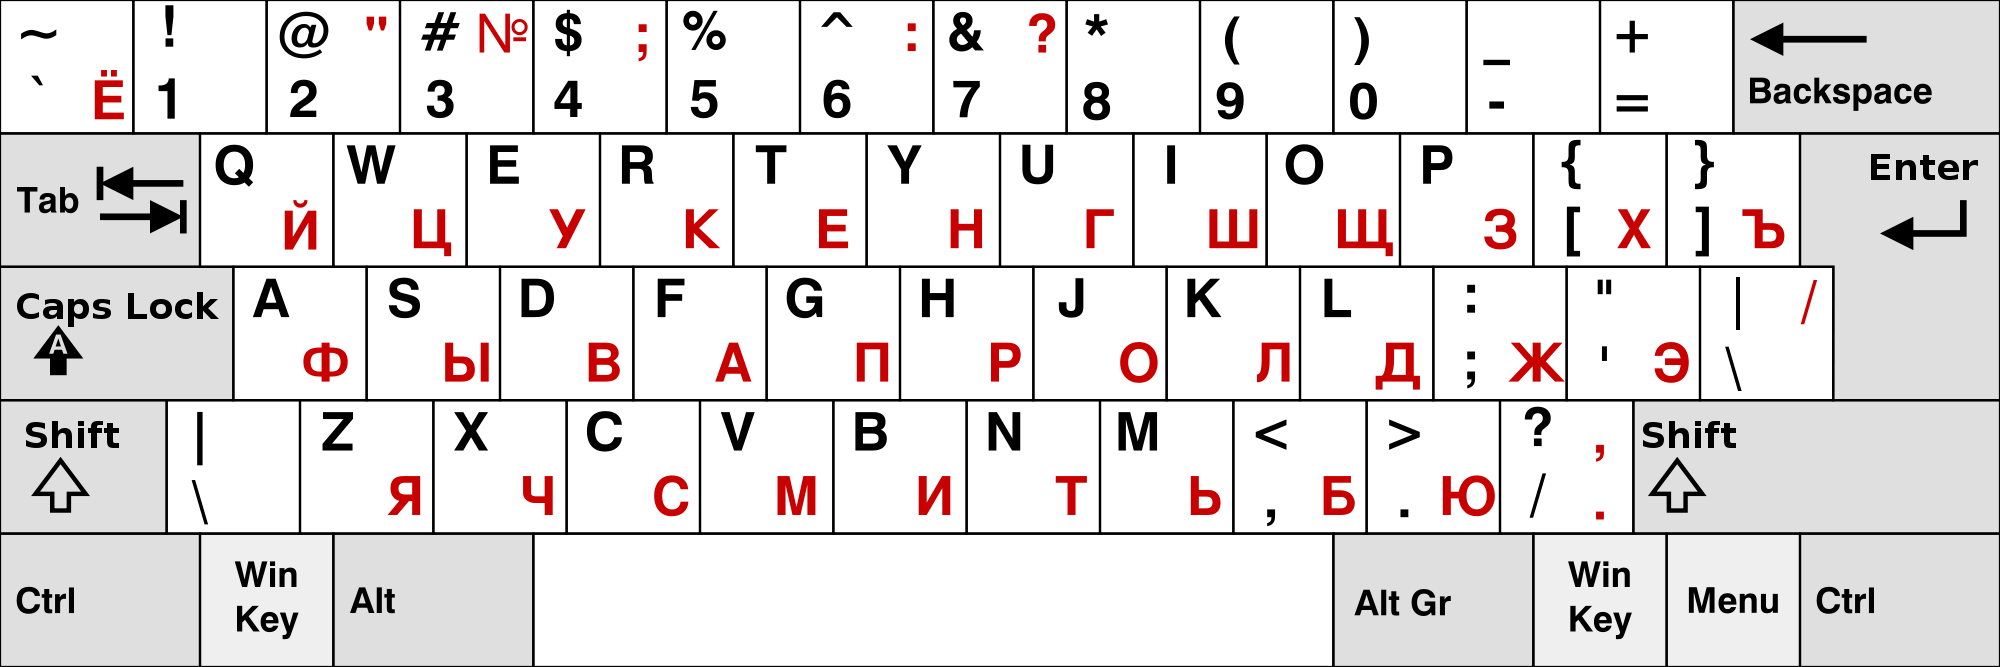 How to install the cyrillic keyboard on your computer or phone russian keyboard layout aljukfo Choice Image